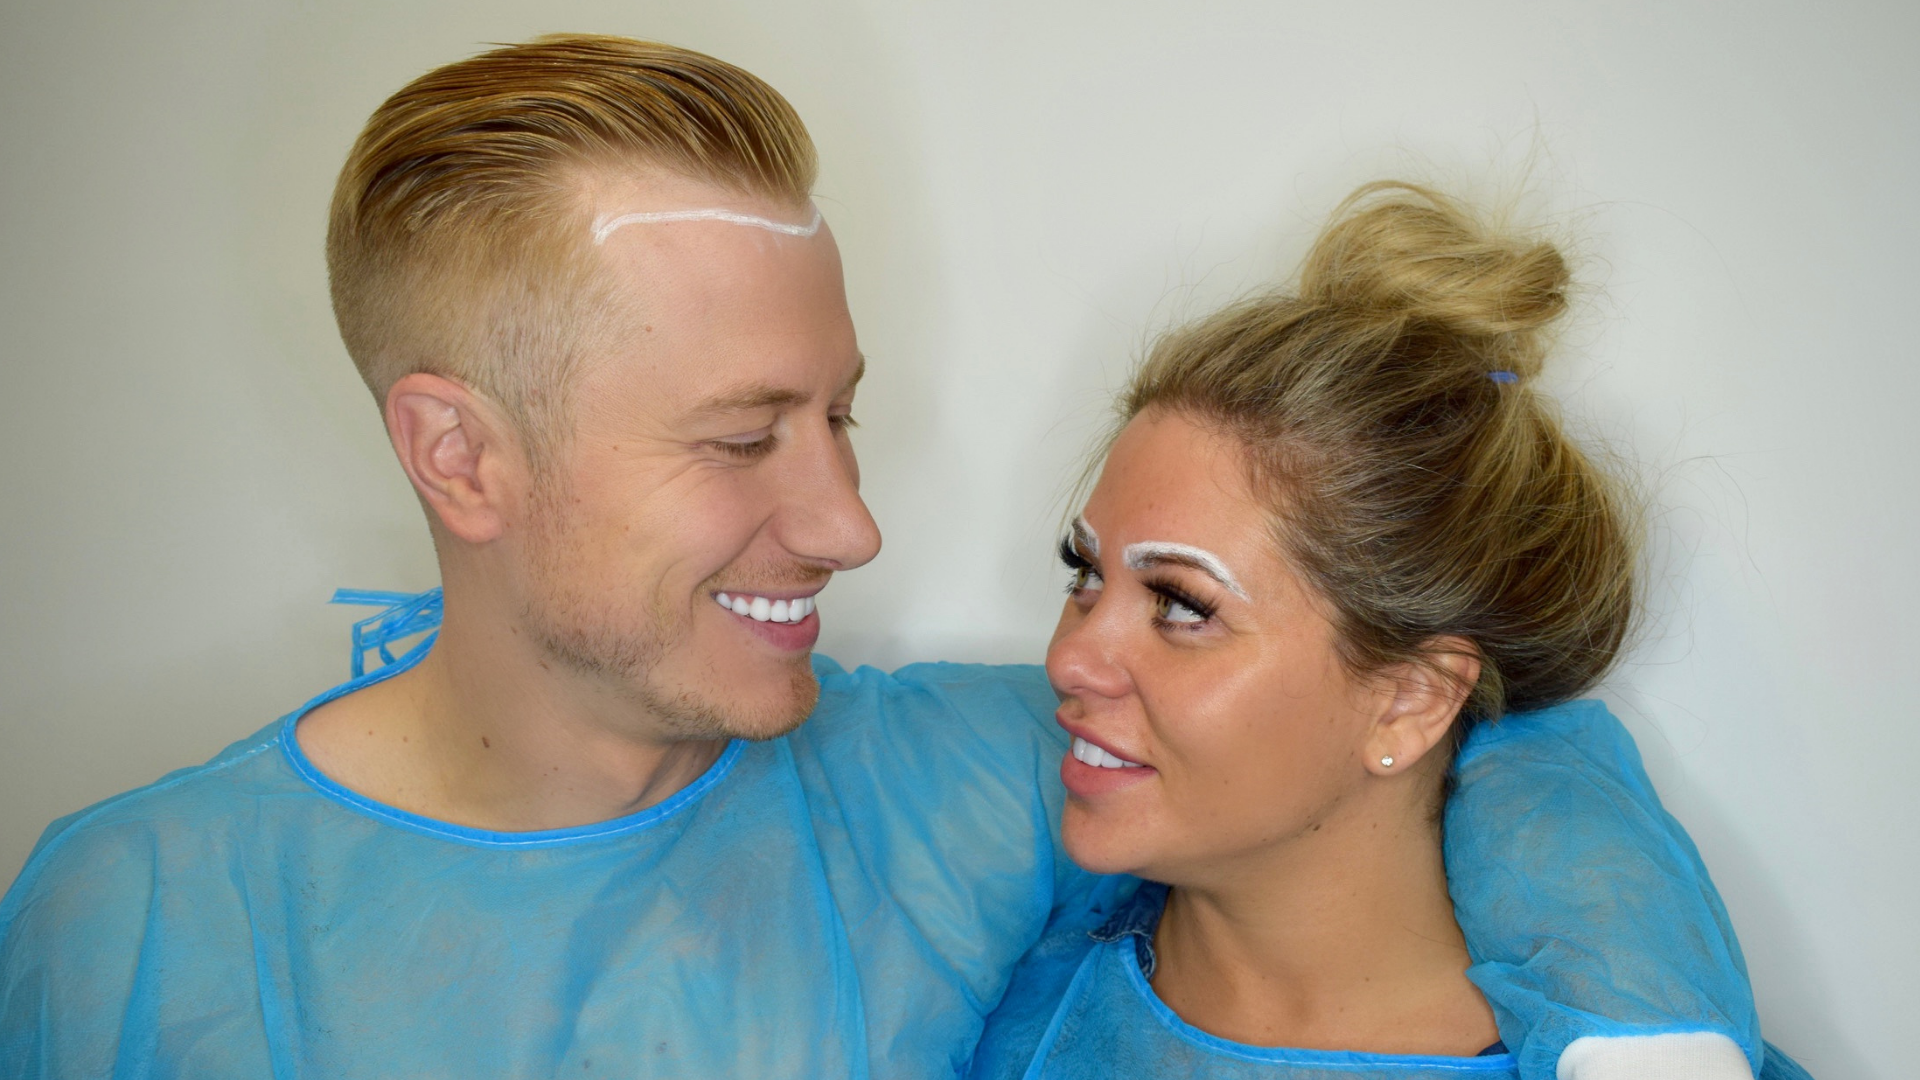 HIS AND HERS FUE TRANSPLANT – BIANCA GASCOIGNE AND KRIS BOYSON